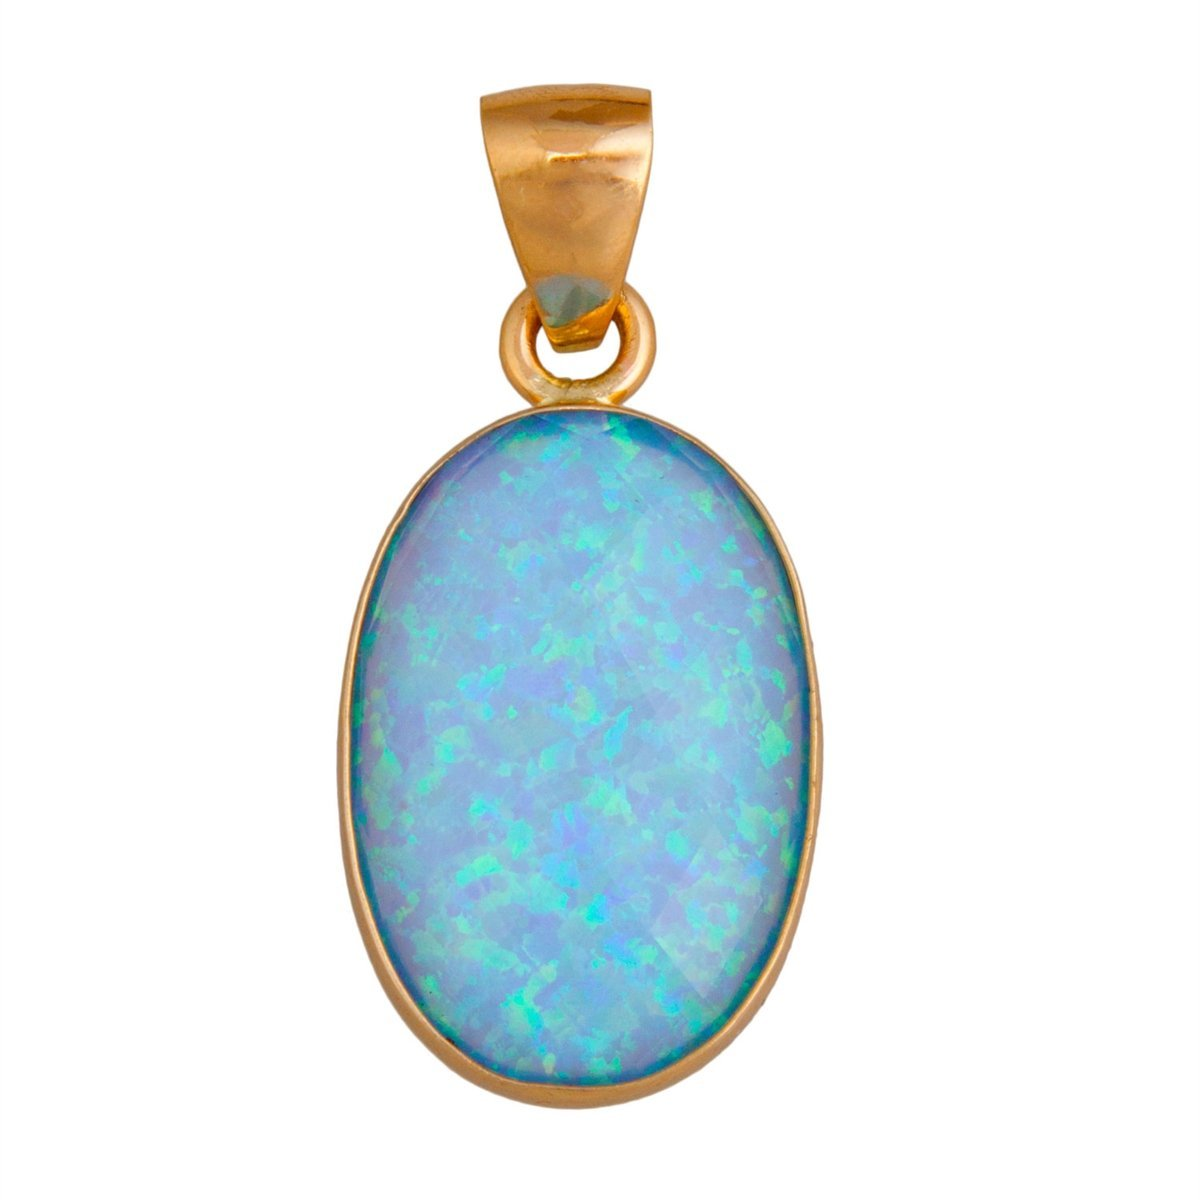 Alchemia Synthetic Opal Pendant - Blue